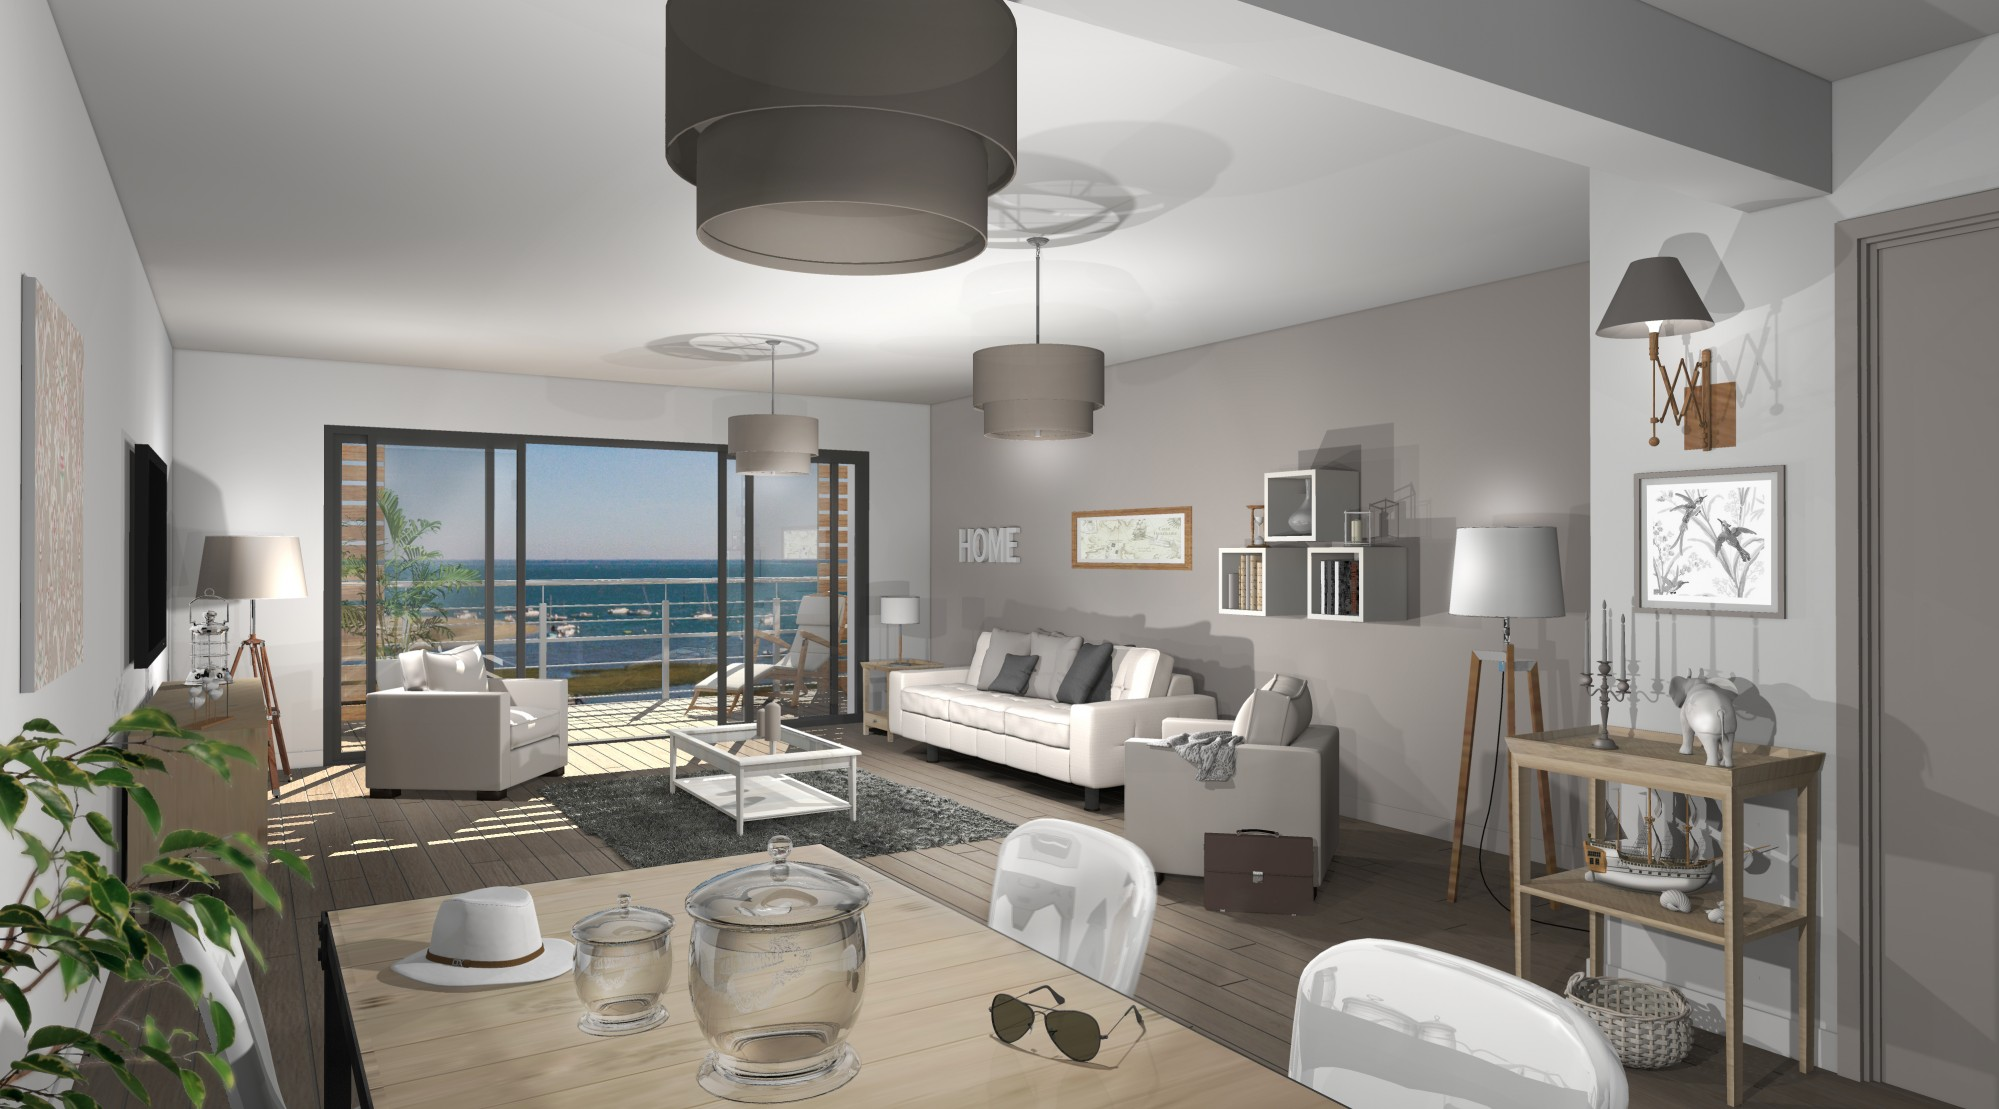 arcachon quartier de l 39 aiguillon appartement neuf avec toit terrasse vue mer barnes bassin d. Black Bedroom Furniture Sets. Home Design Ideas